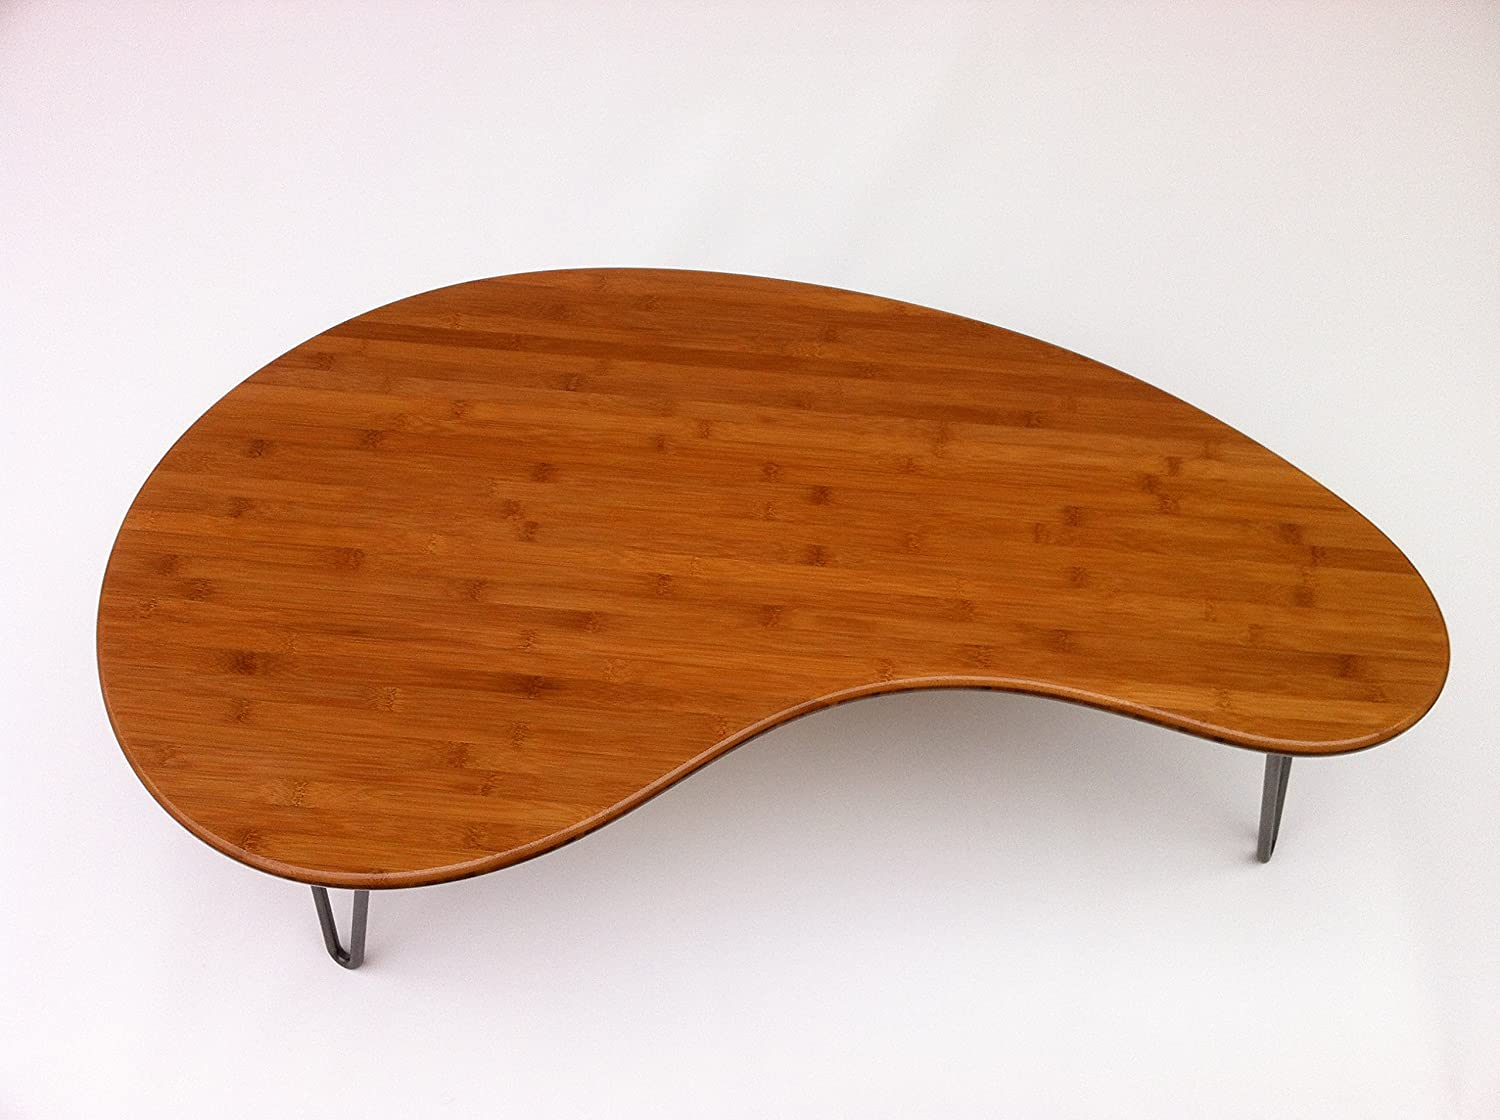 Boomerang Coffee Table Amazoncom Mid Century Modern Coffee Or Cocktail Table Kidney